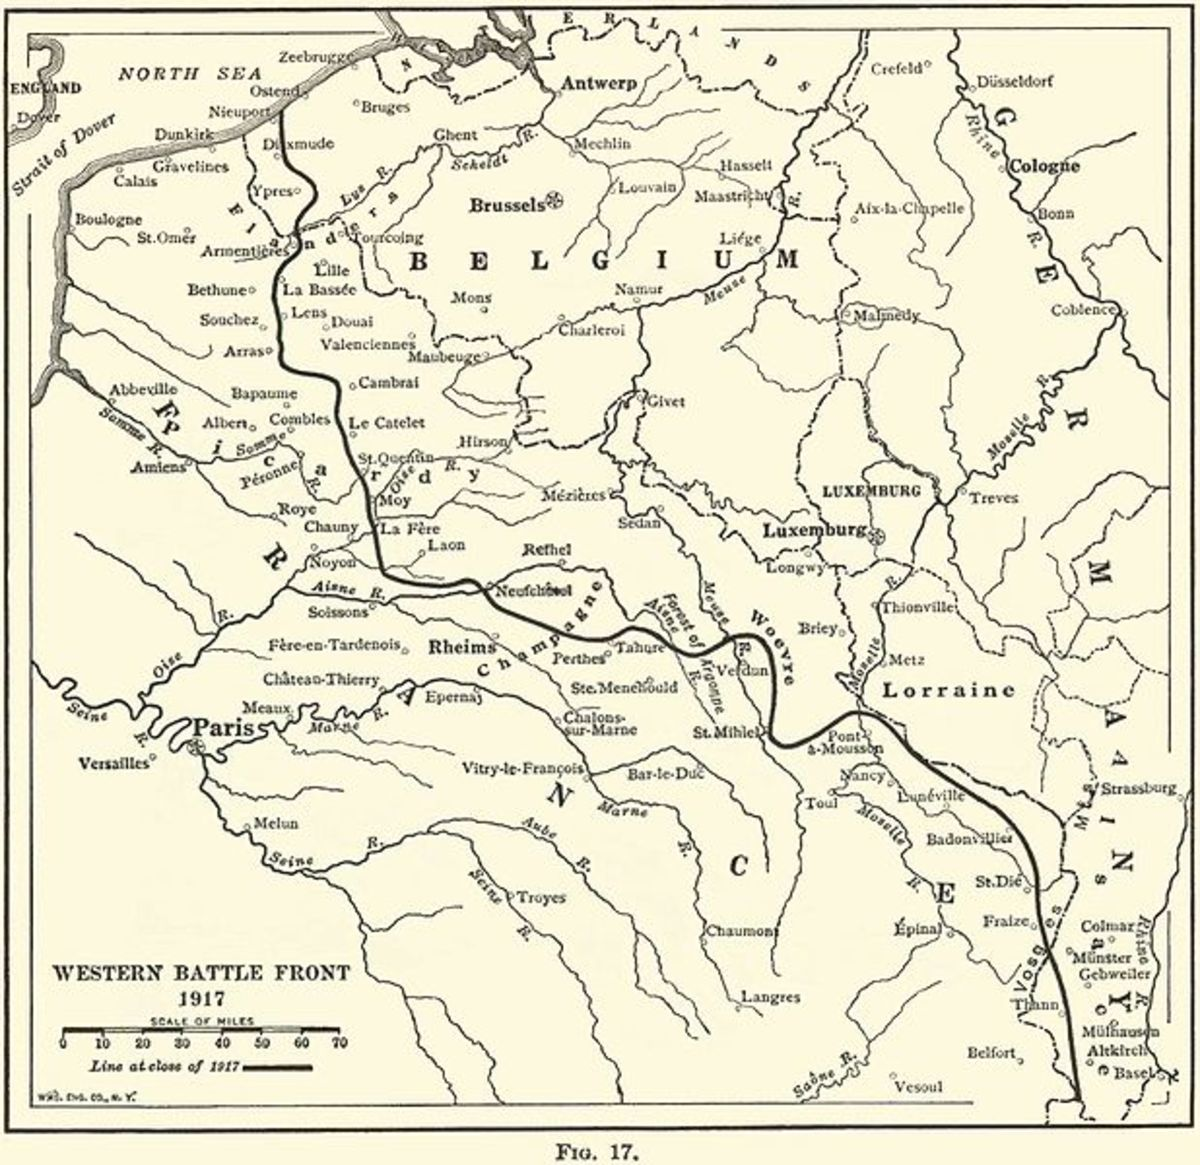 The bolded black line on the map shows where the trenches stretched from The North Sea to the Swiss border.